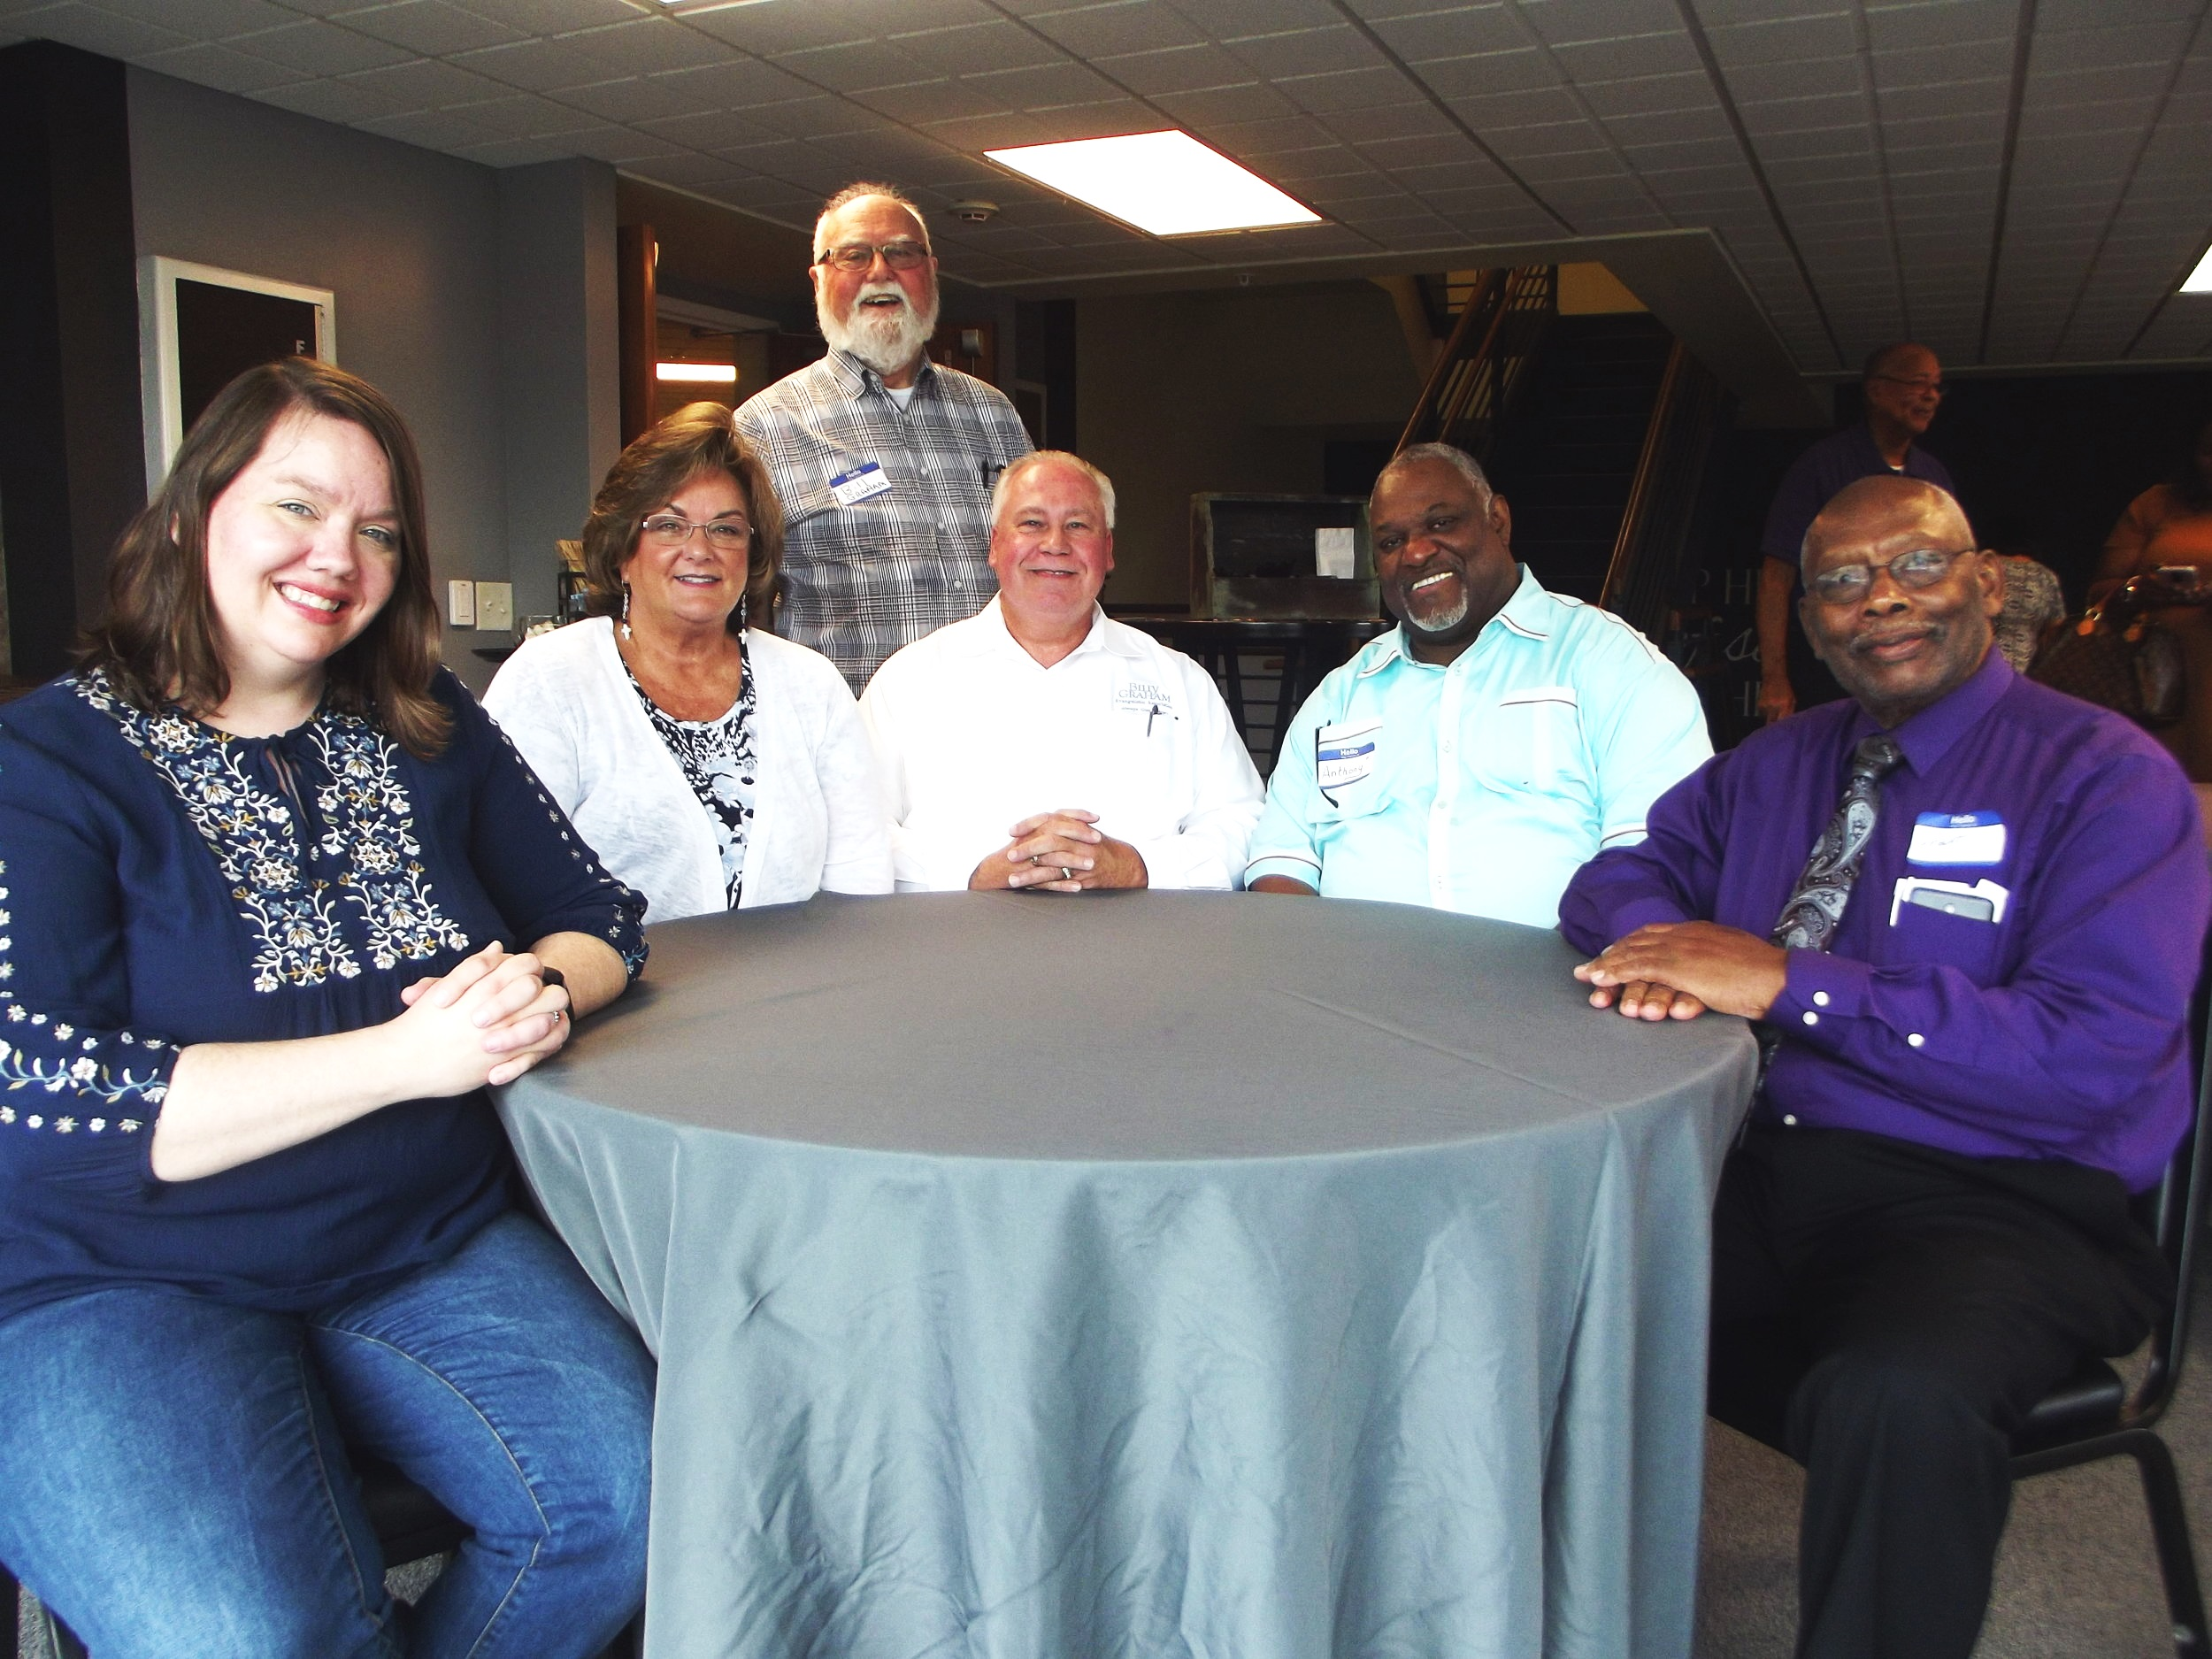 Left to Right: Rev. Haley Robinson, Kathy Martin. Rev. Garry Martin, Bishop Anthony Alfred, Dr. Anderson Grant, Standing: Pastor Bill Graham